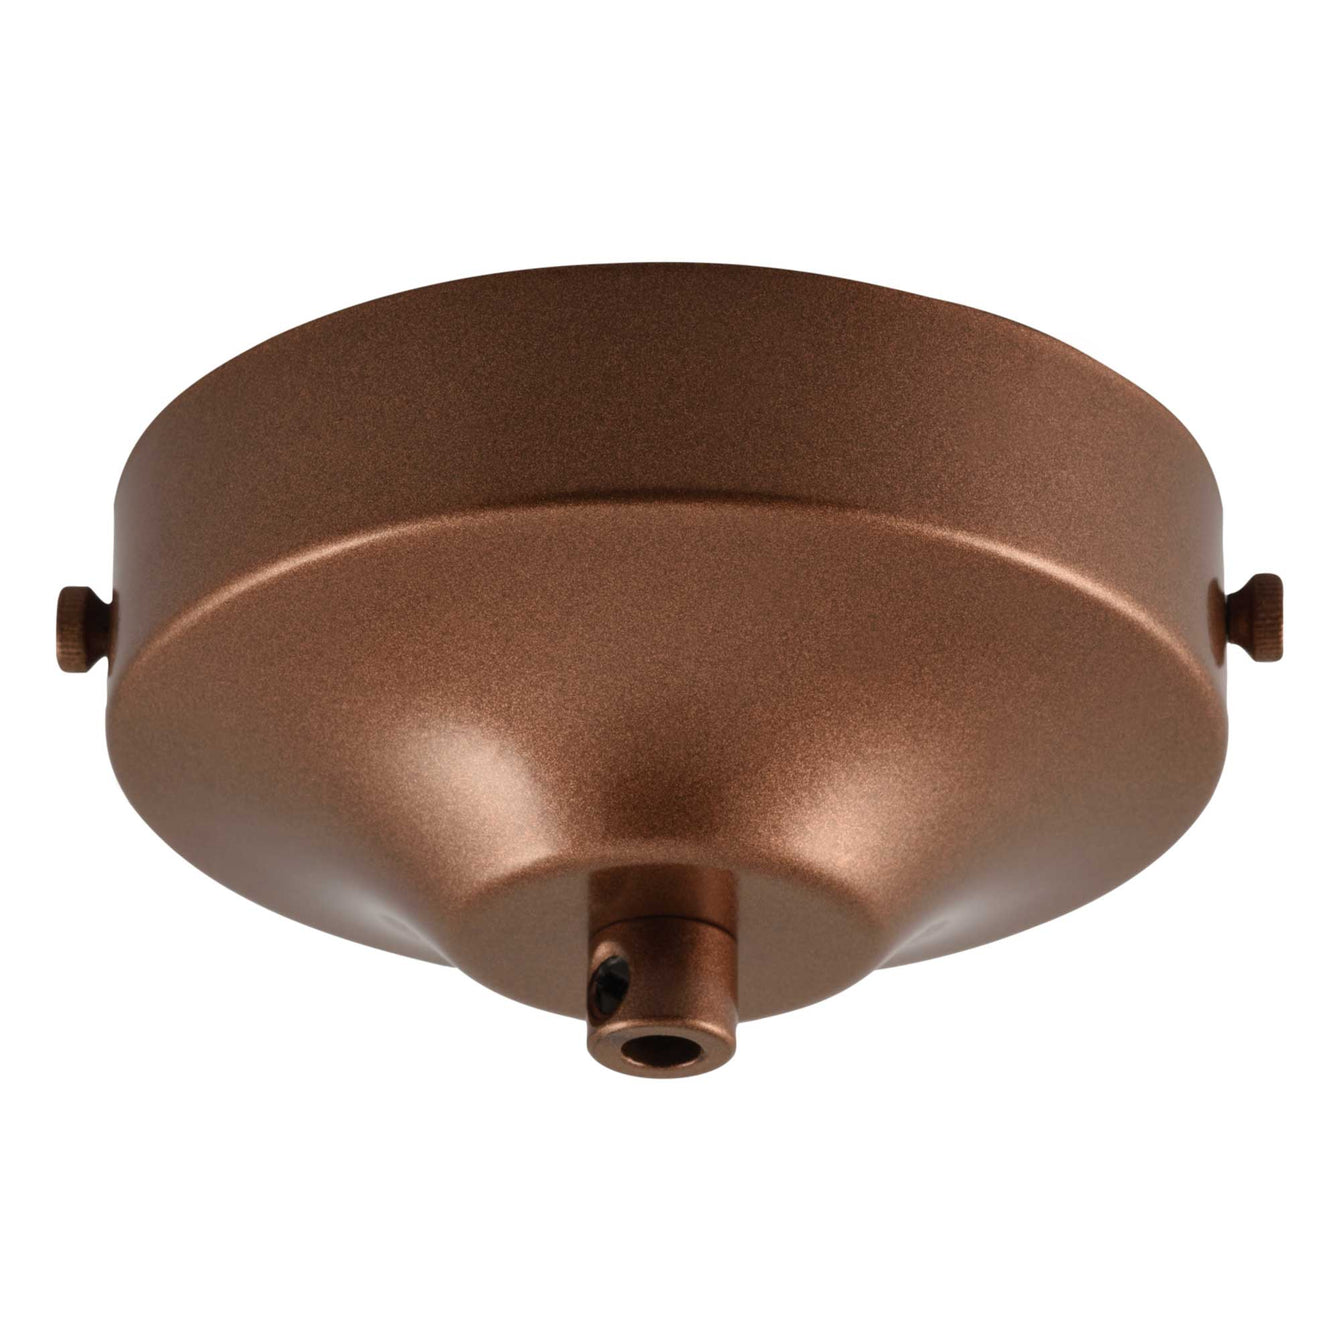 ElekTek 100mm Diameter Convex Ceiling Rose with Strap Bracket and Cord Grip Metallic Finishes Powder Coated Colours - Buy It Better Chrome